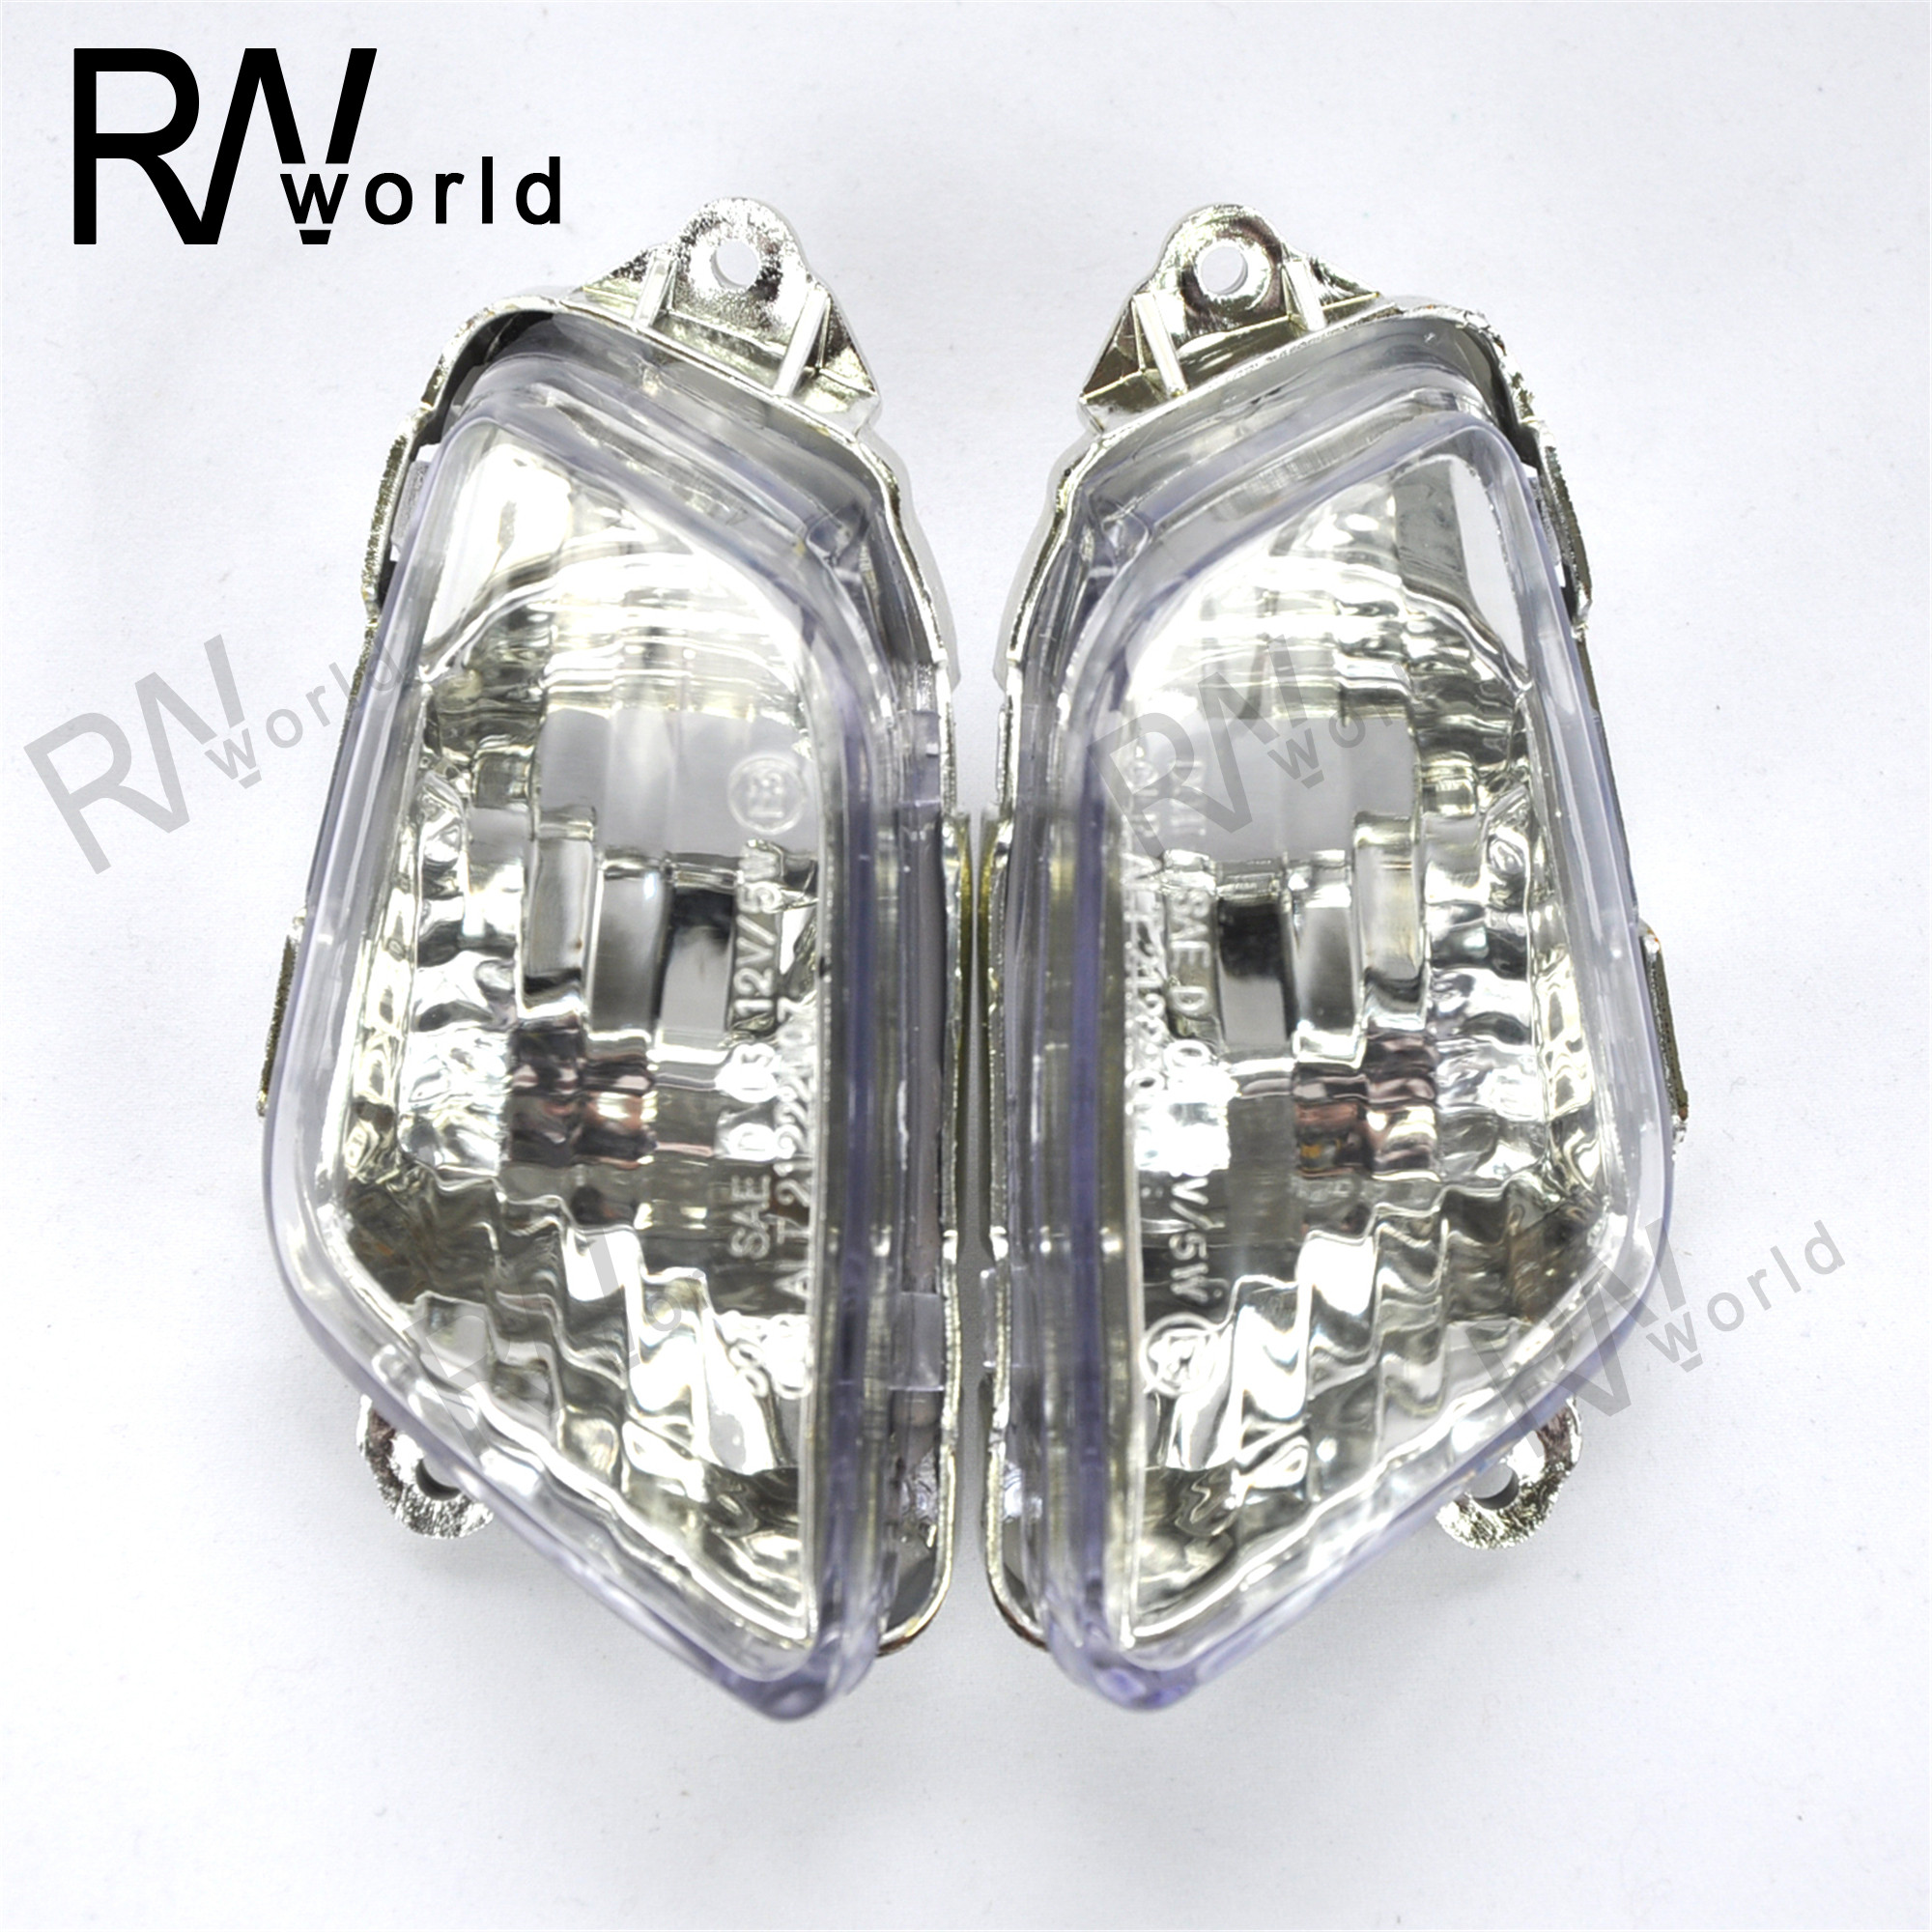 Motorcycle Front LED Turn Signal Lights Lens Covers For HONDA CBR1100XX CBR1100 XX CBR 1100XX 1997-2006 1998 00 01 02 03